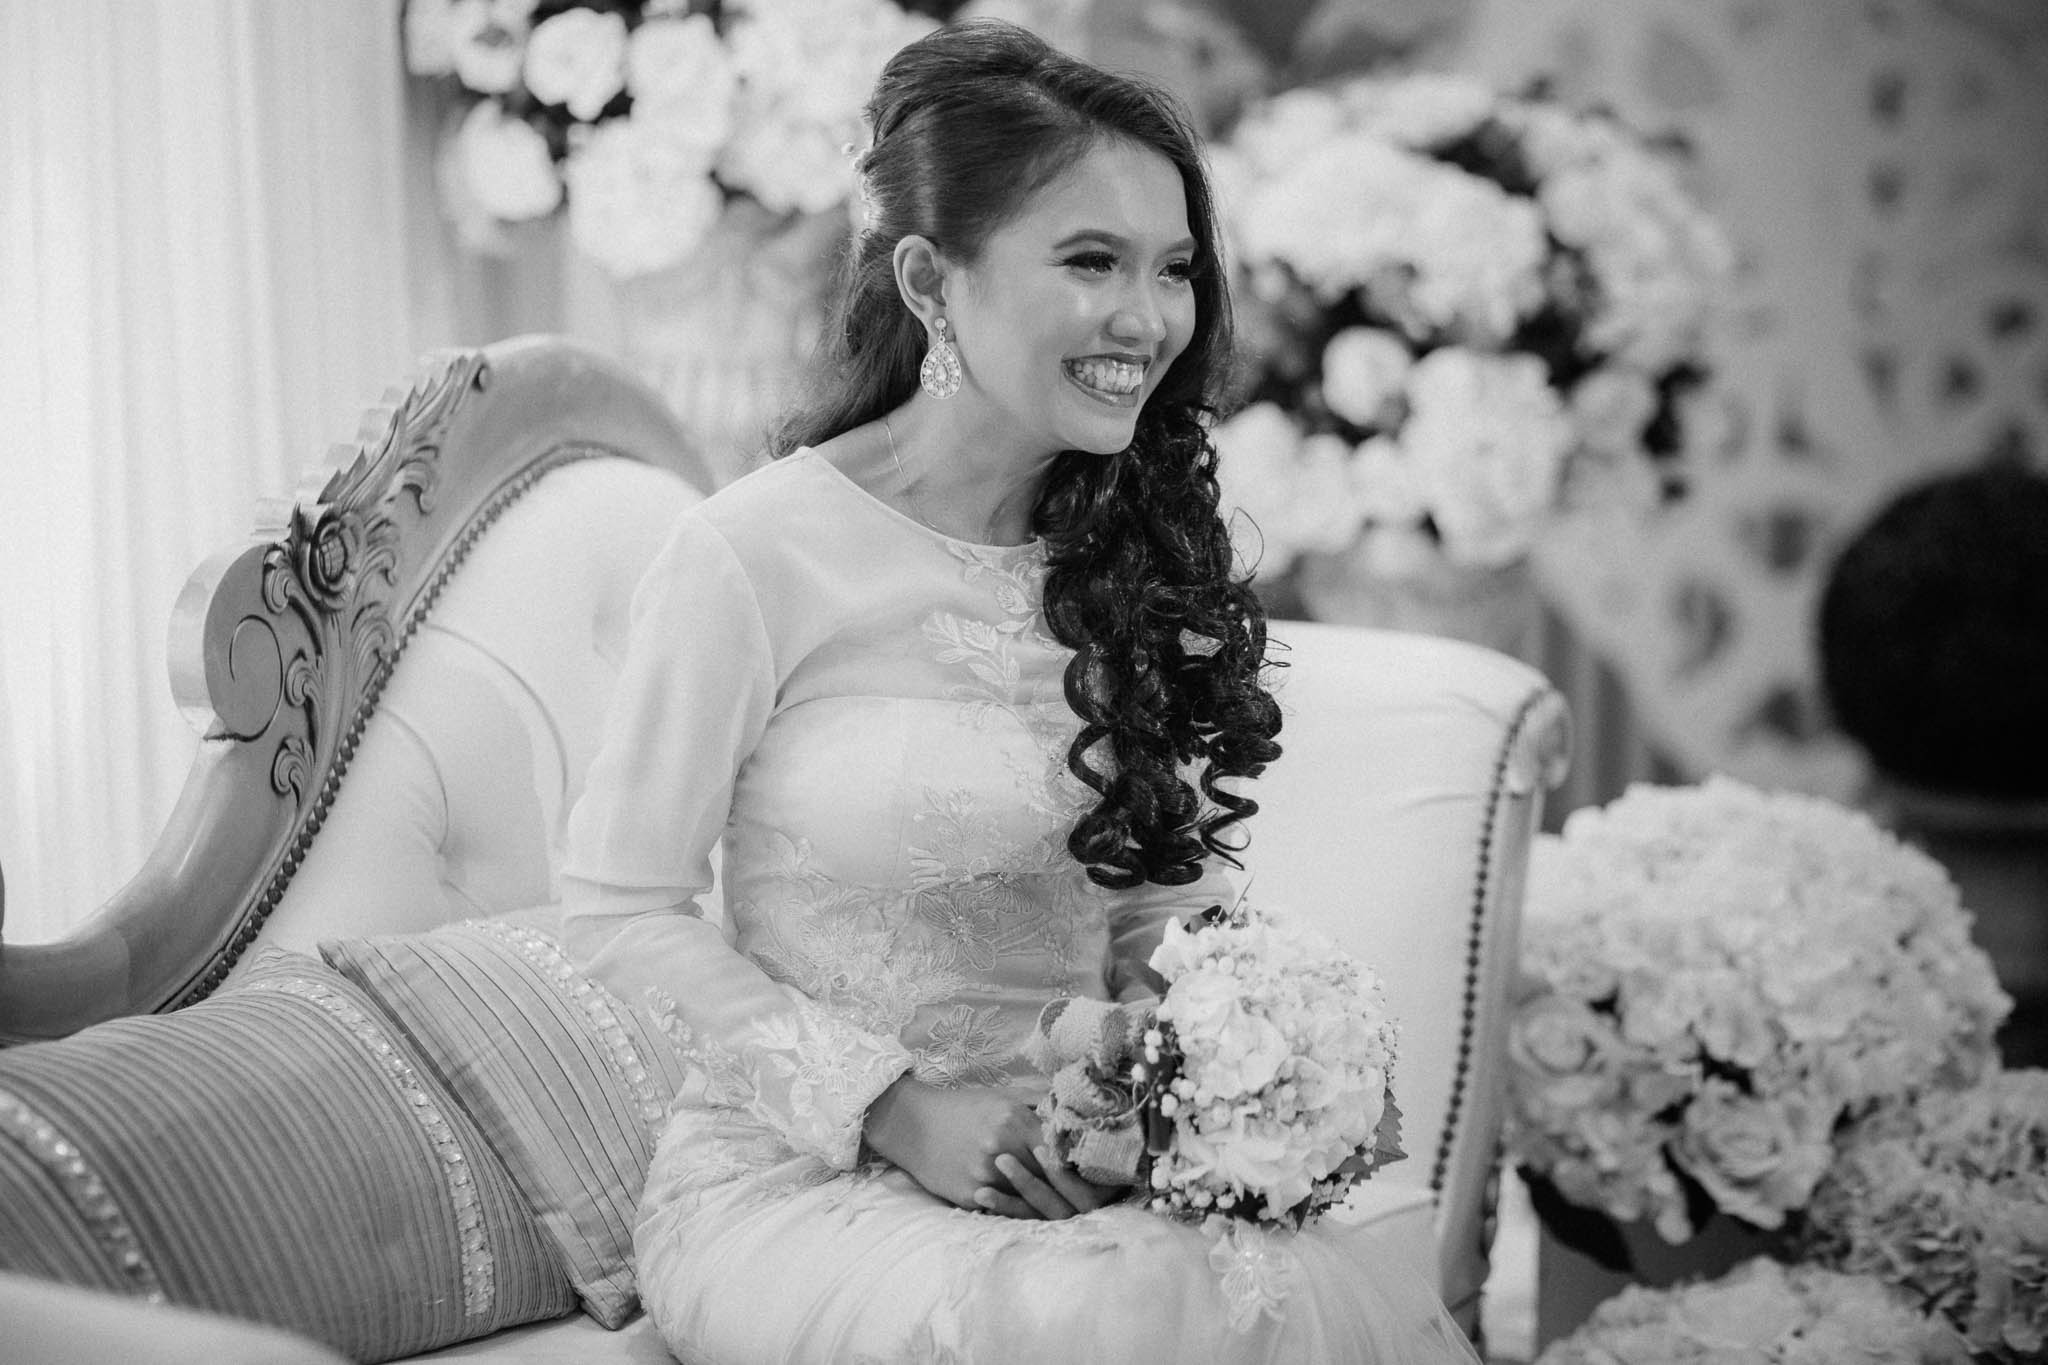 singapore-wedding-photographer-wedding-halimah-muhsin-033.jpg